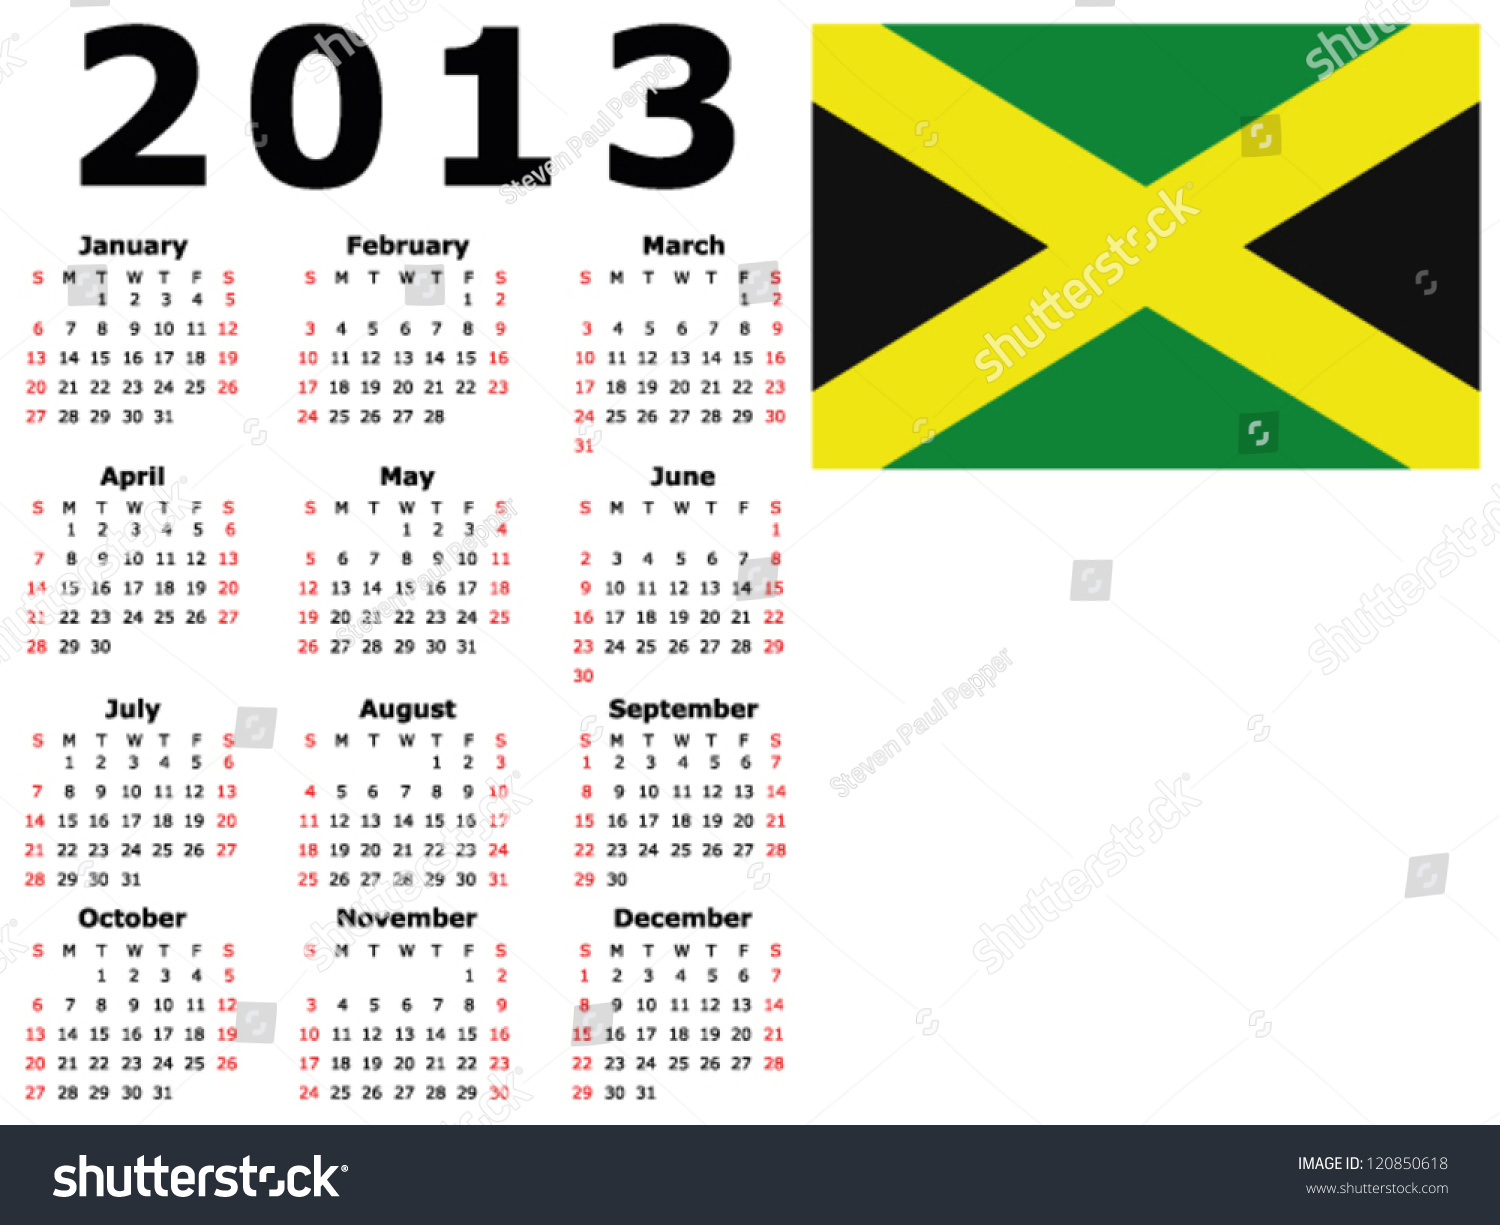 Calendar Jamaica : Calendar jamaica flag stock vector illustration